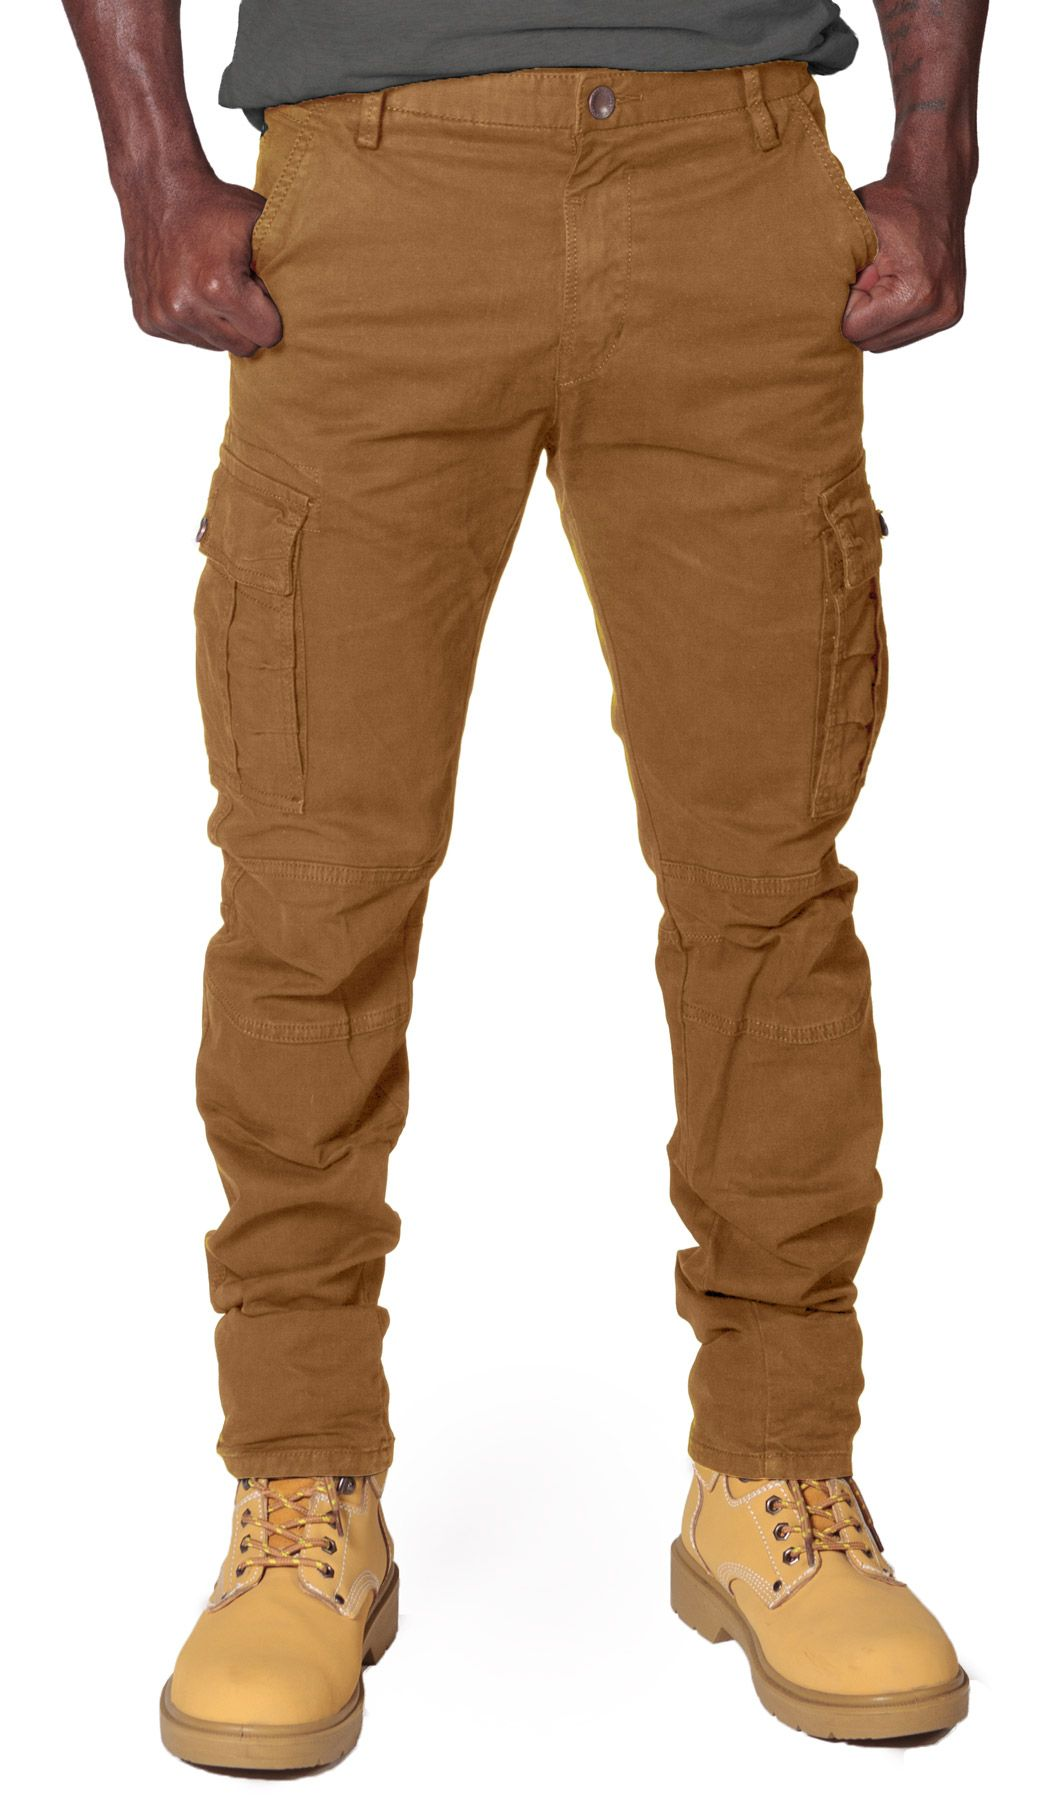 Men's Slim Fit Cargo Trousers - Light Brown. Slightly stretchy ...